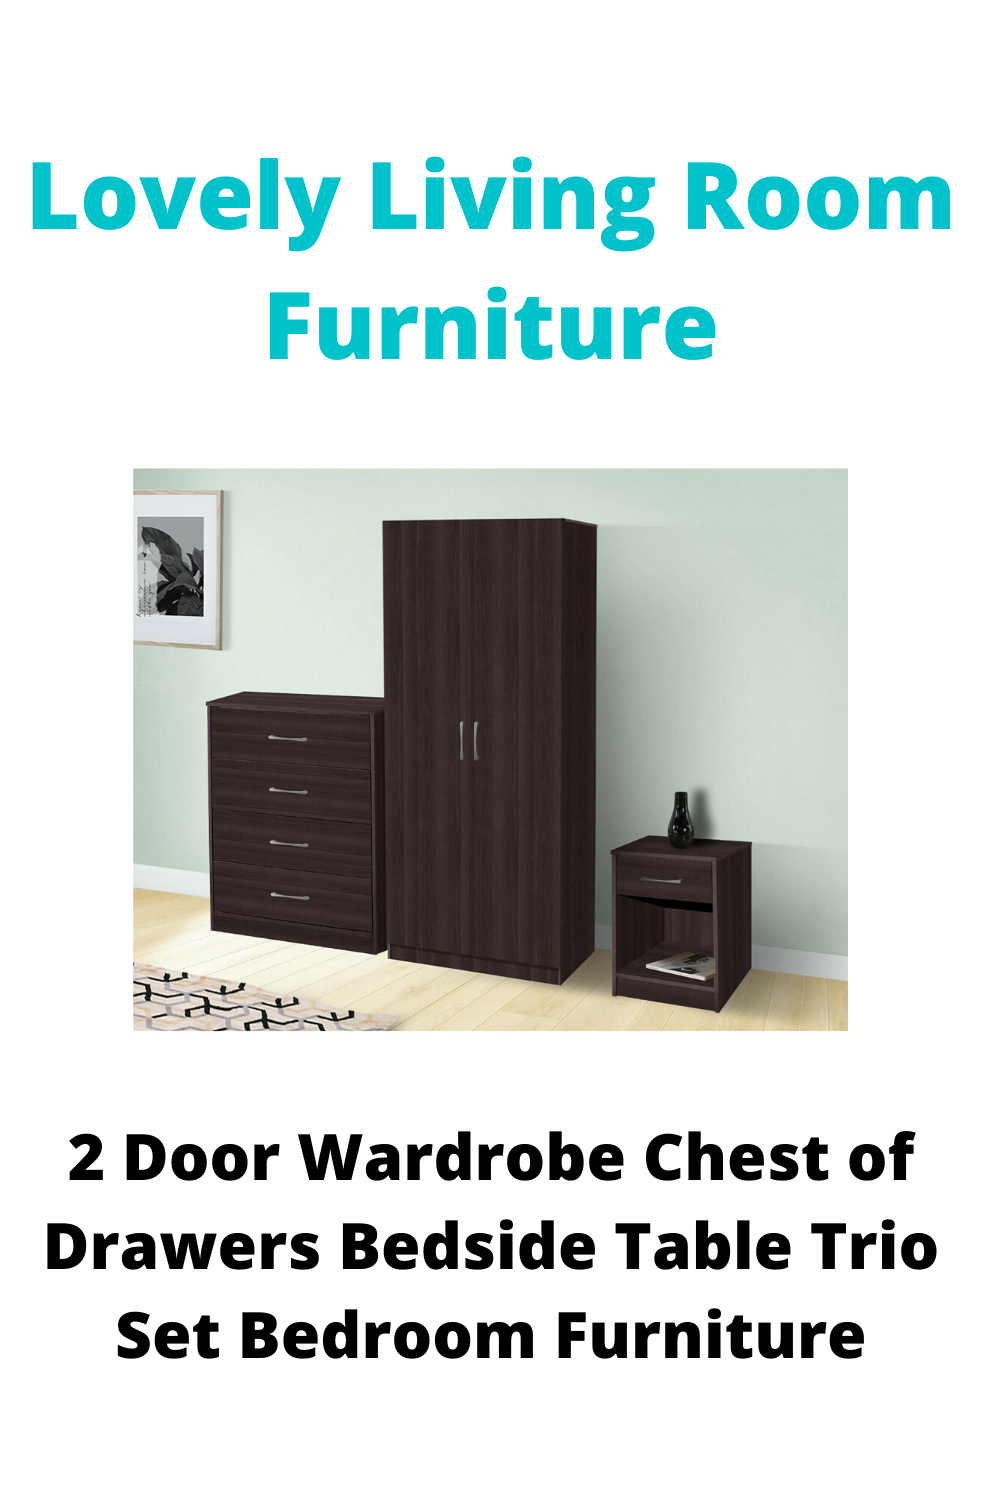 Solid Construction, Various Colours, Fast and Free Delivery, MDF, Trio Set, Wardrobe Included, Chest of Drawers Included, Bedside Table Included, Flat Pack#furniture #furnituredesign #furniturejepara #furniturejakarta #furnituremurah #furniturebandung #furnituresurabaya #furniturebali #furnitureonline #furnitureindonesia #furnitureminimalis #furnituremaker #FURNITUREMEWAH #furniturestore #furnitures #furnituremedan #furnituremodern #furniturecafe #furniturevintage #furnituredesing #furnituremal